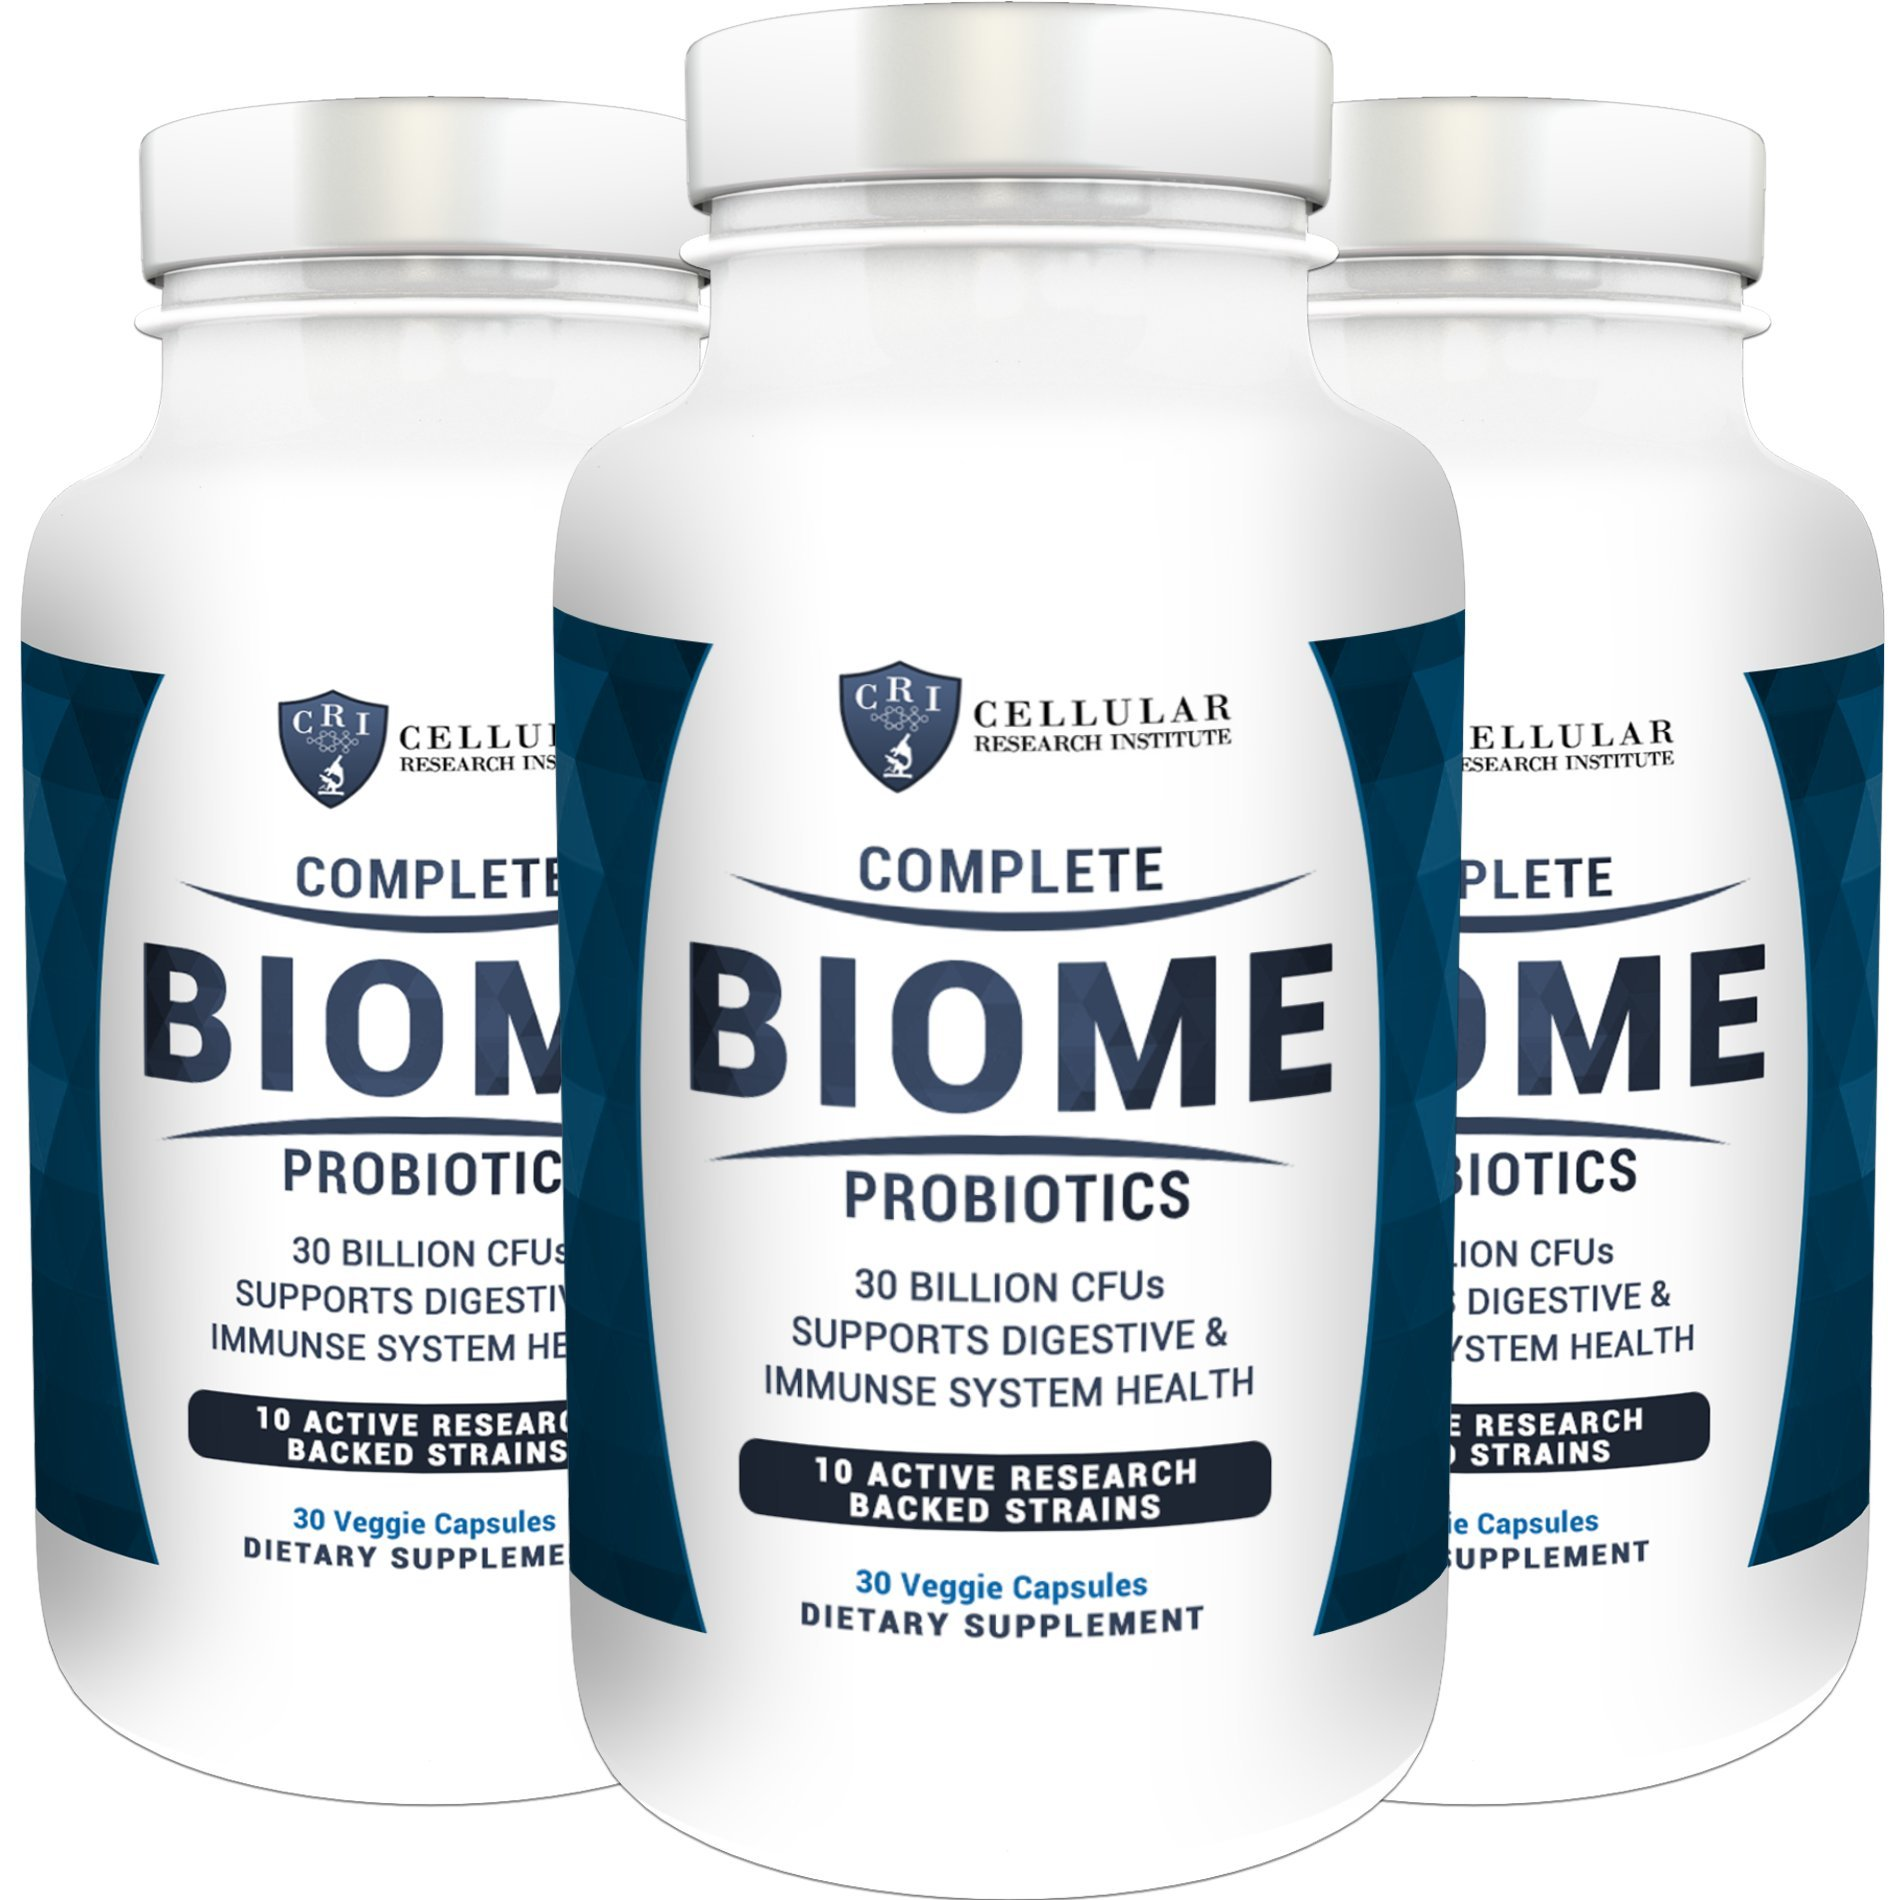 Complete Biome Probiotics - 30 Billion CFUs and 10 Active Strains - Stomach Relief - Boost Your Immunity - Mental Clarity - Lower Fatigue - 90 Money Back Guarantee (3 - Pack)